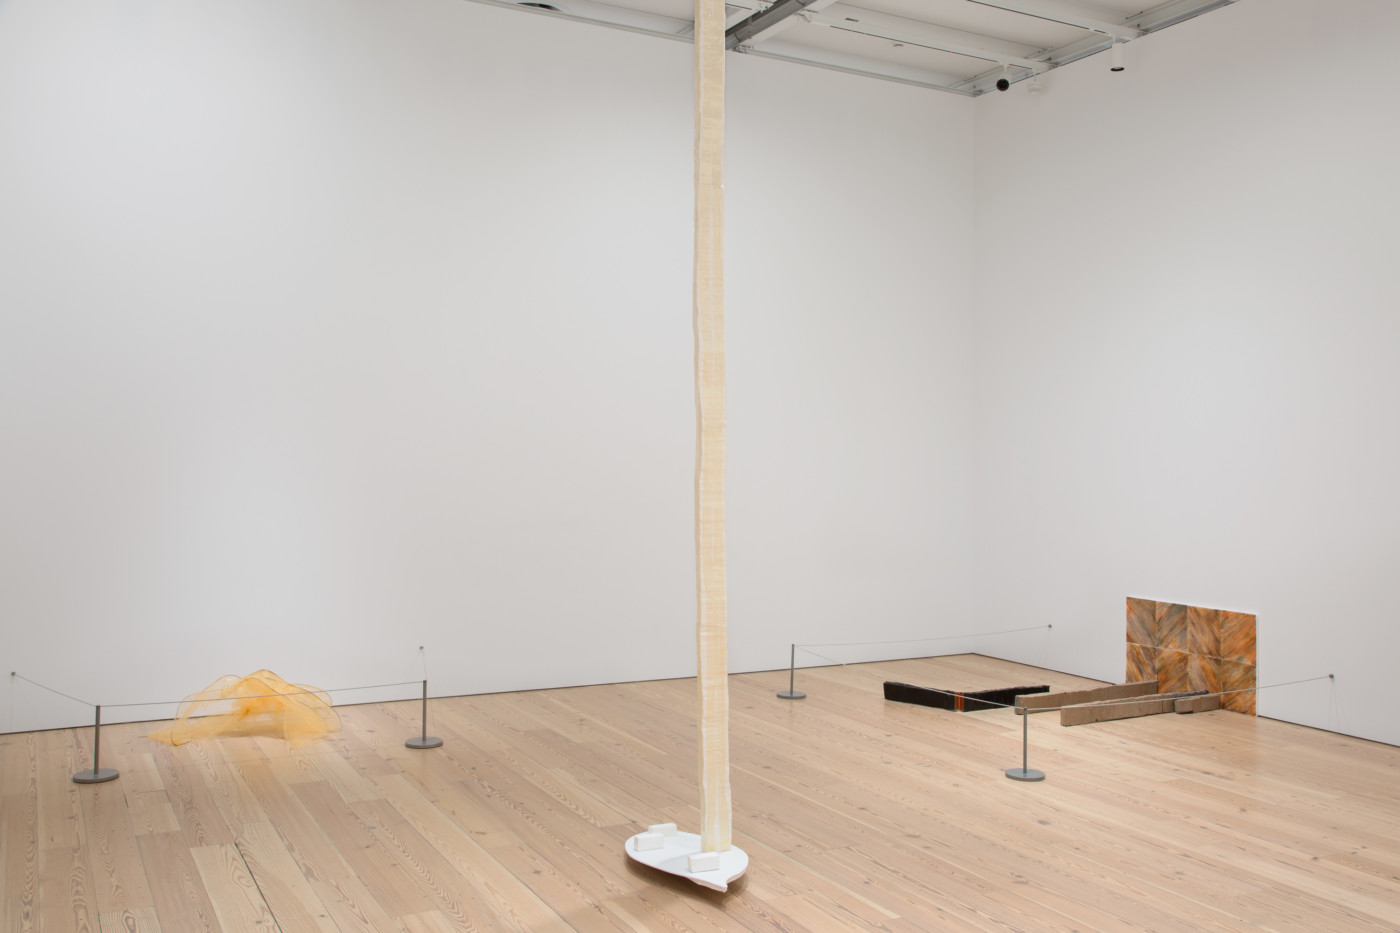 OLGA BALEMA  Whitney Biennial 2019 , Whitney Museum of American Art, New York, installation view - High Art Gallery Paris